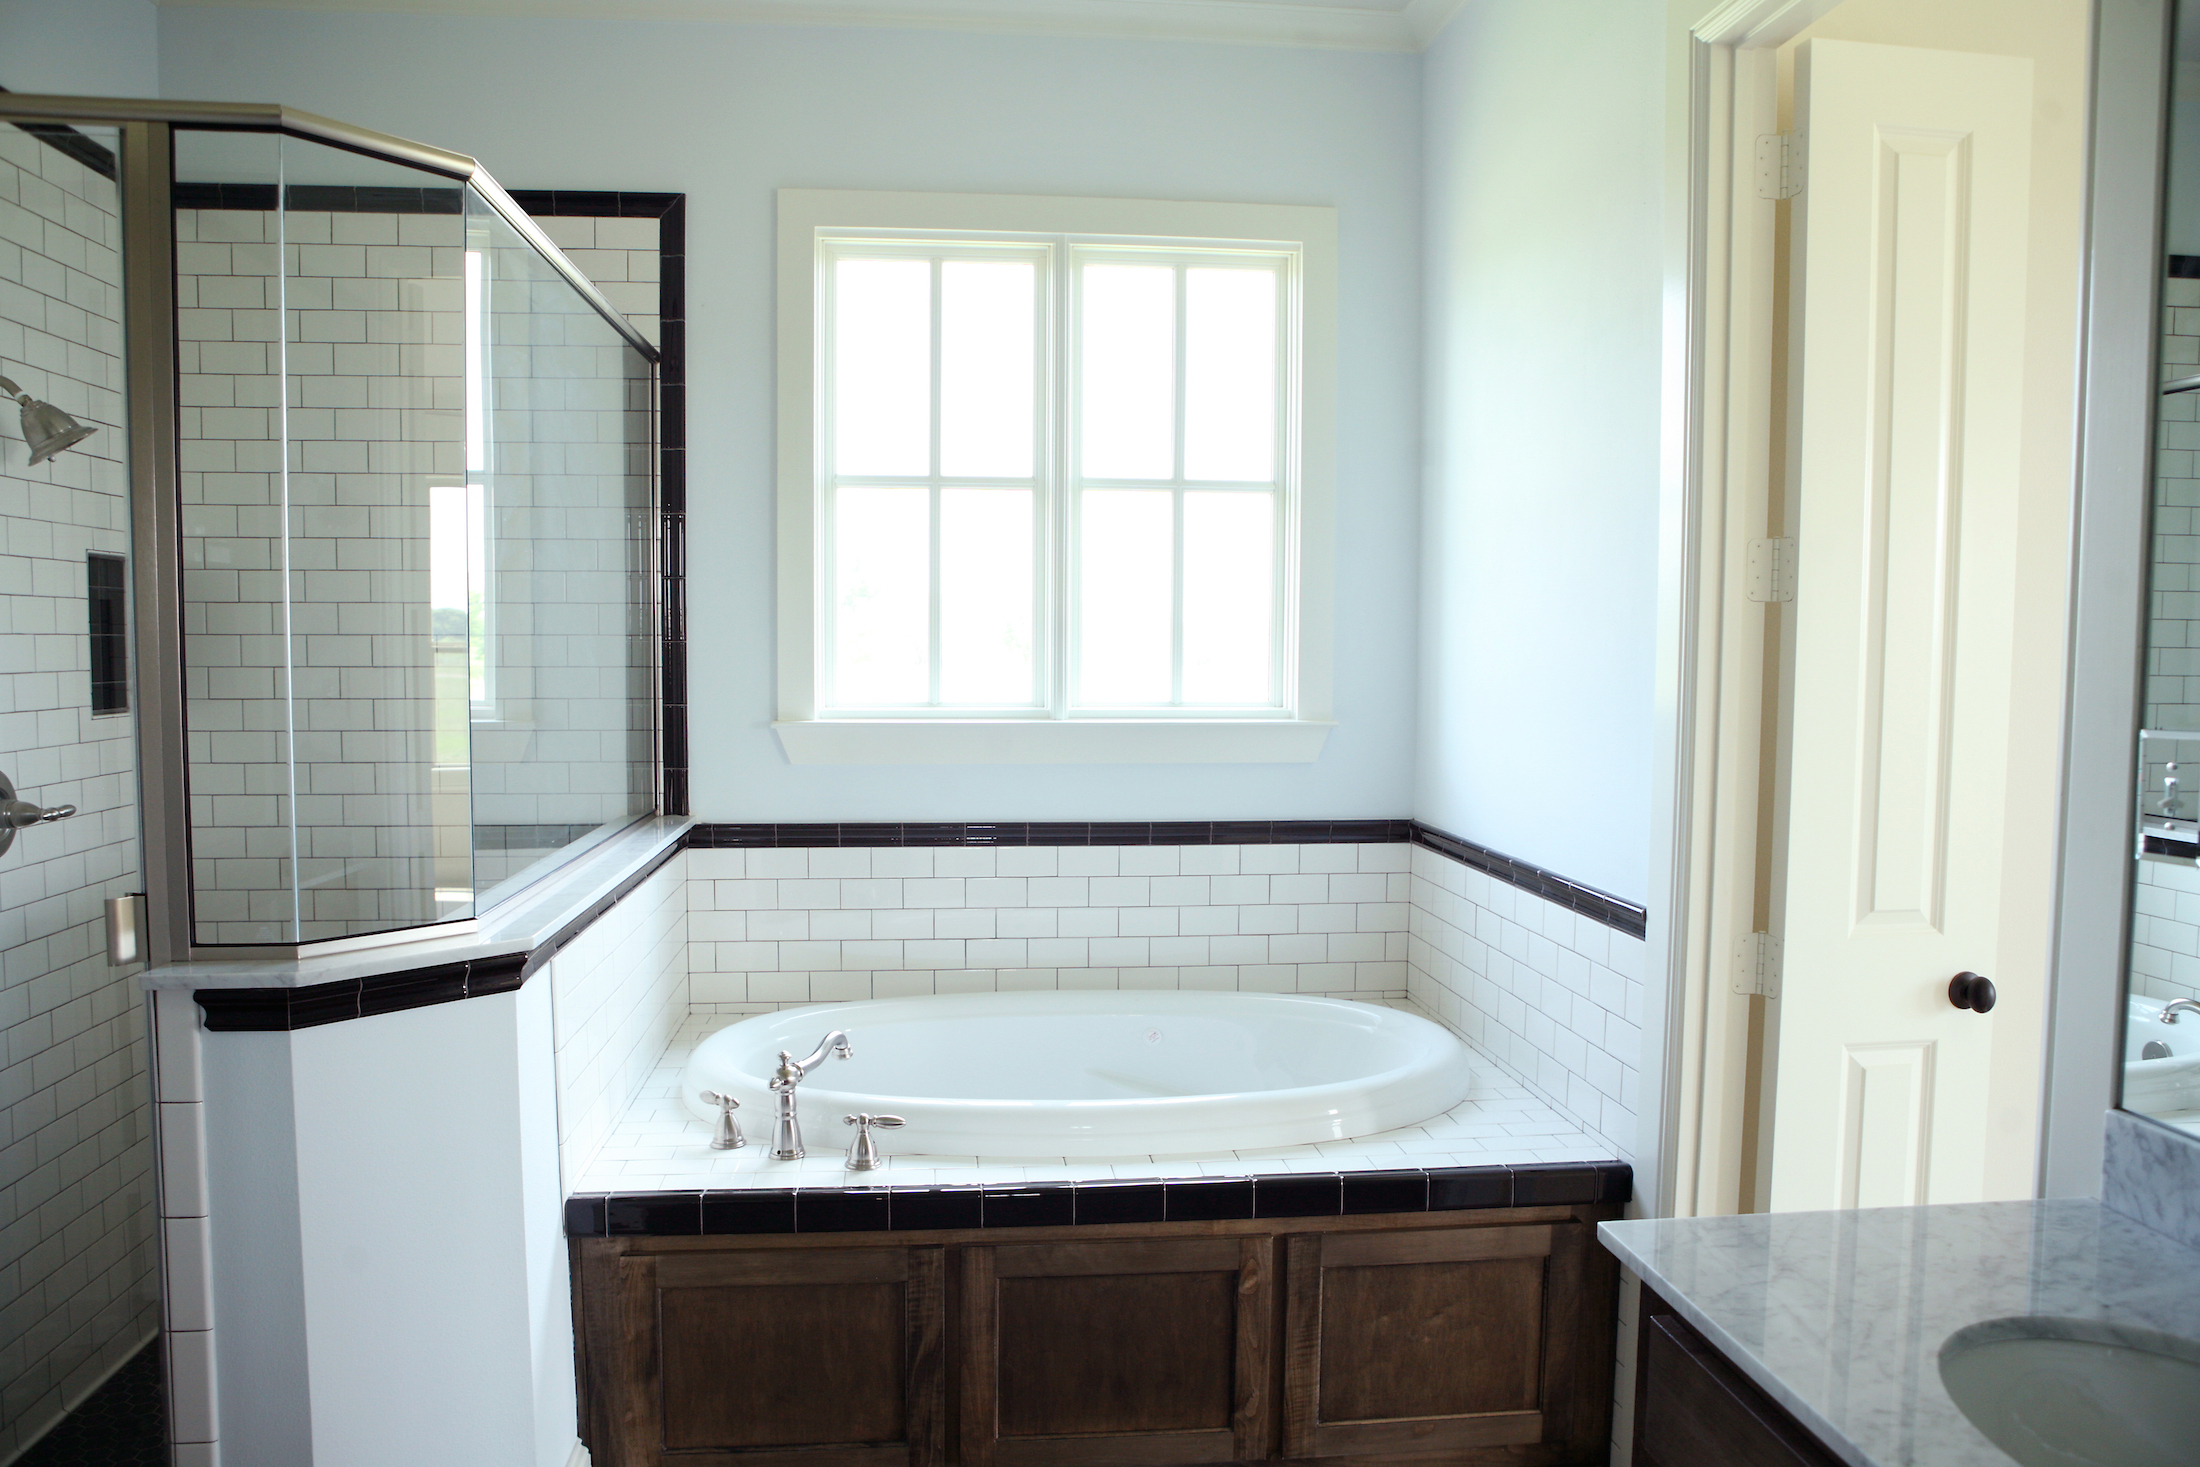 Bathroom Design (Custom Texas Homes): Tiled Tub Deck With Maple Front and Shower